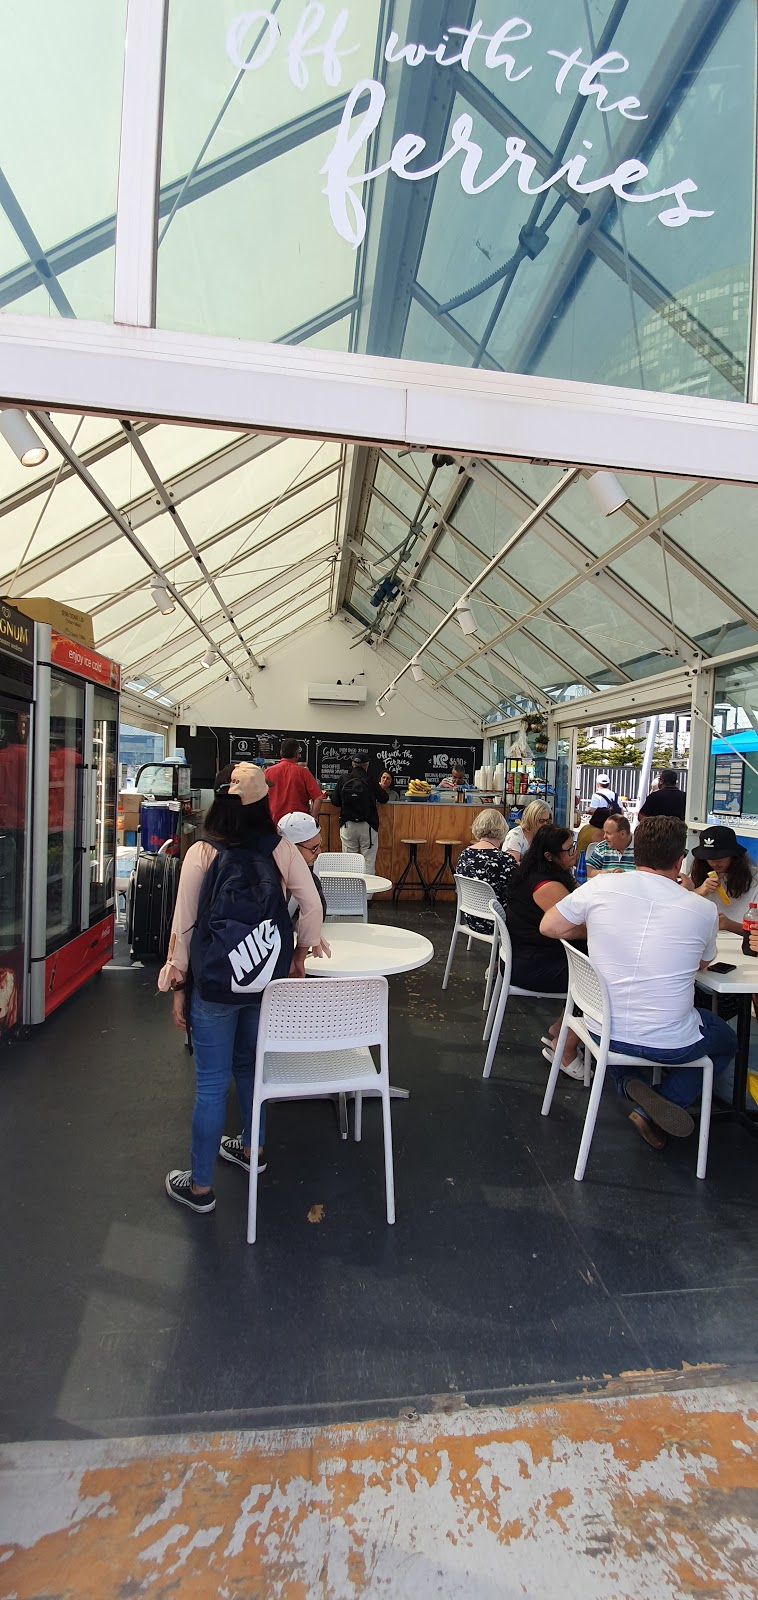 Off With The Ferries Cafe   cafe   131 Harbour Esplanade, Docklands VIC 3008, Australia   0395148959 OR +61 3 9514 8959